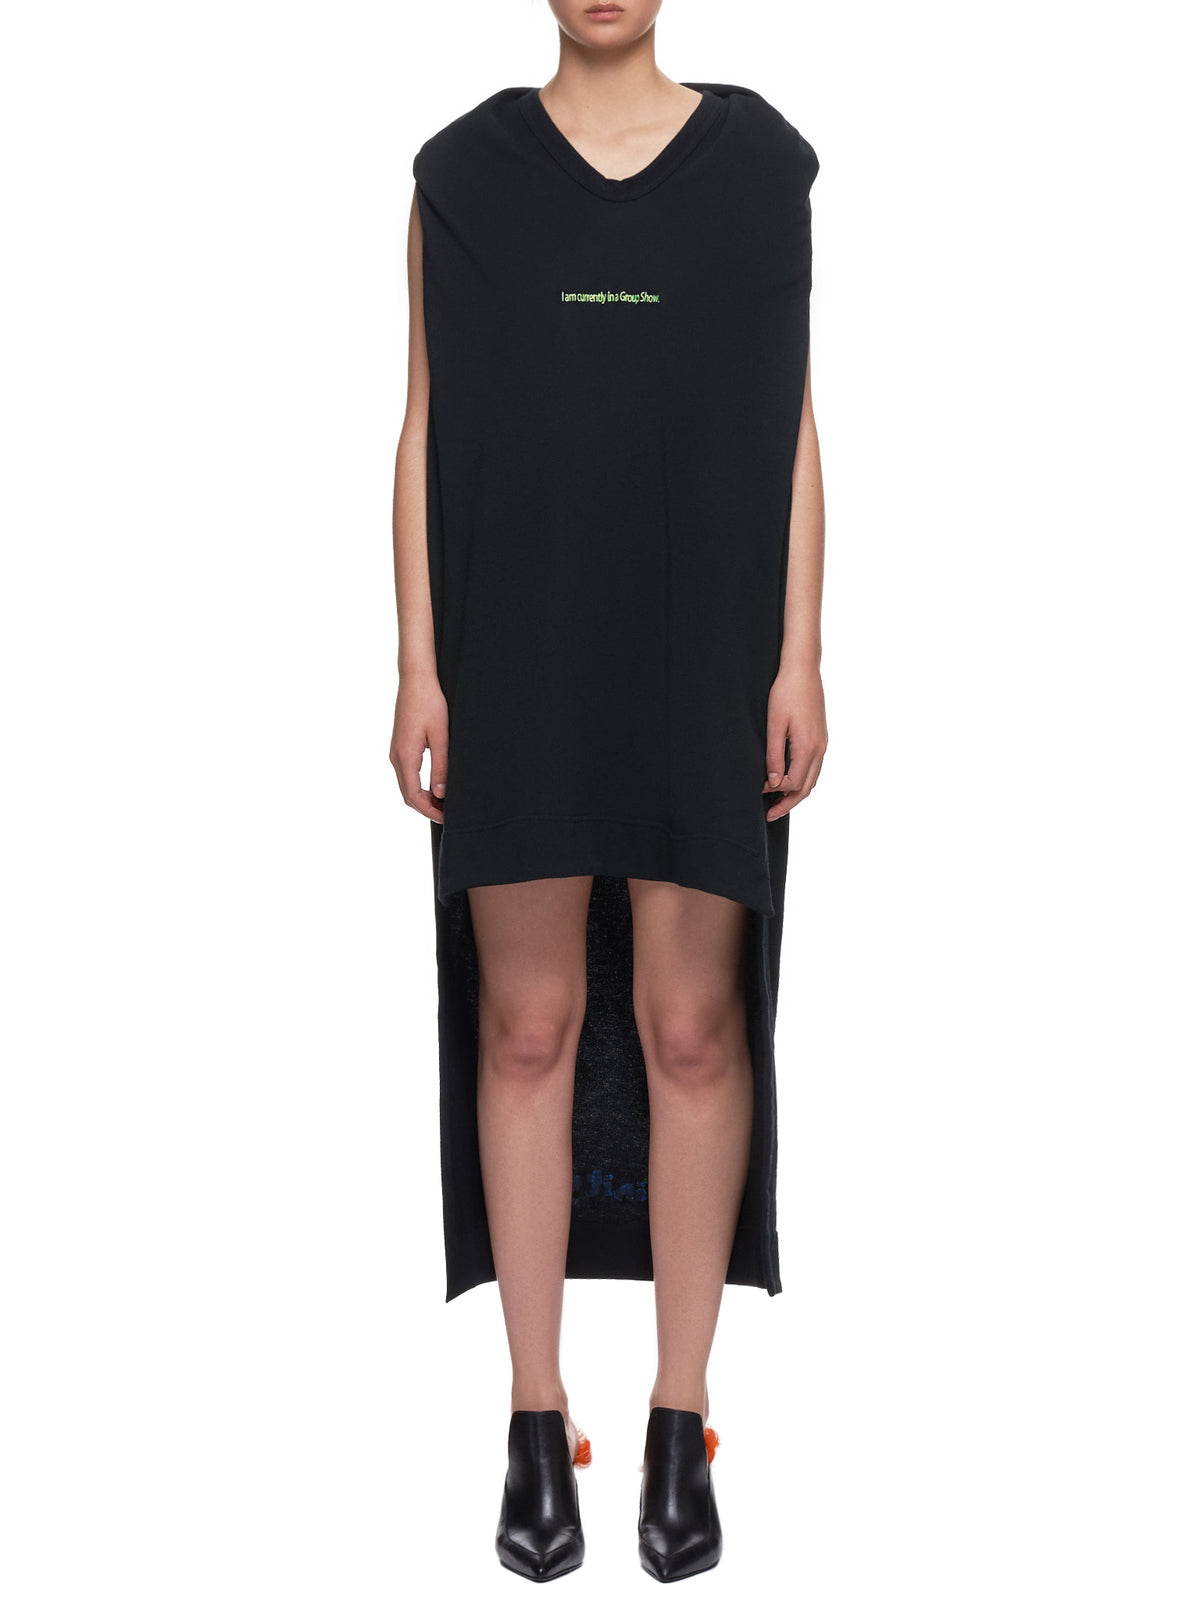 'I am currently in a Group Show' T-Shirt Dress (133-GRO-BLACK)